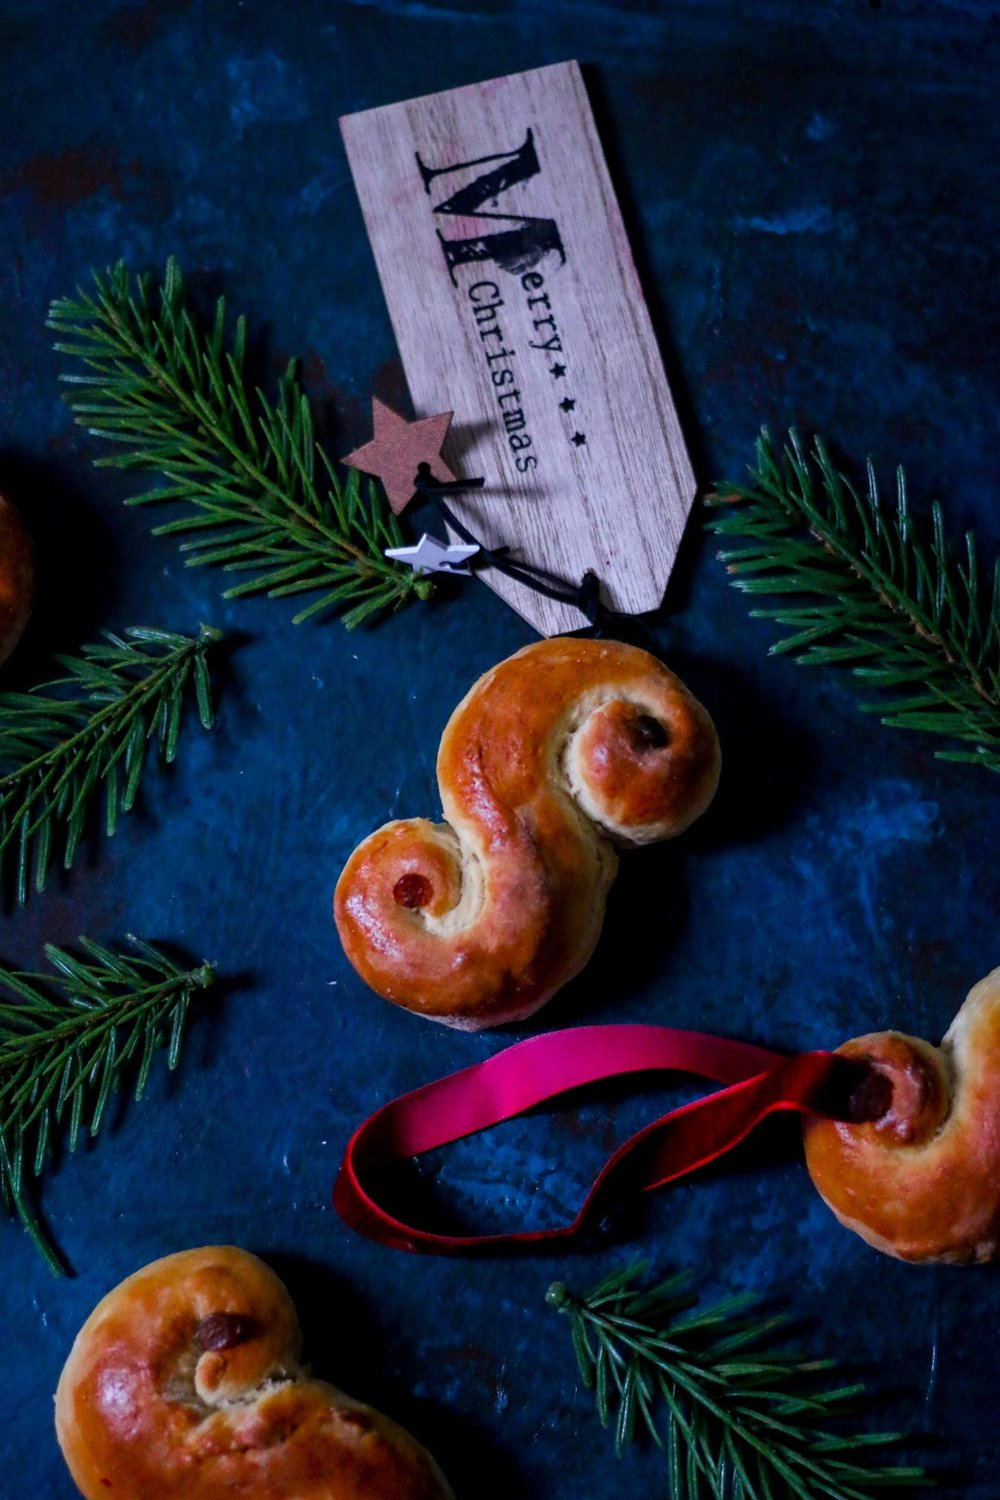 Lussekatter-St.-Lucia-Saffron-Buns-Christmas-Cookbook-Melissa-Ofoedu-Photography-for-A-Sweet-Point-of-View-7-von-1-1.jpg